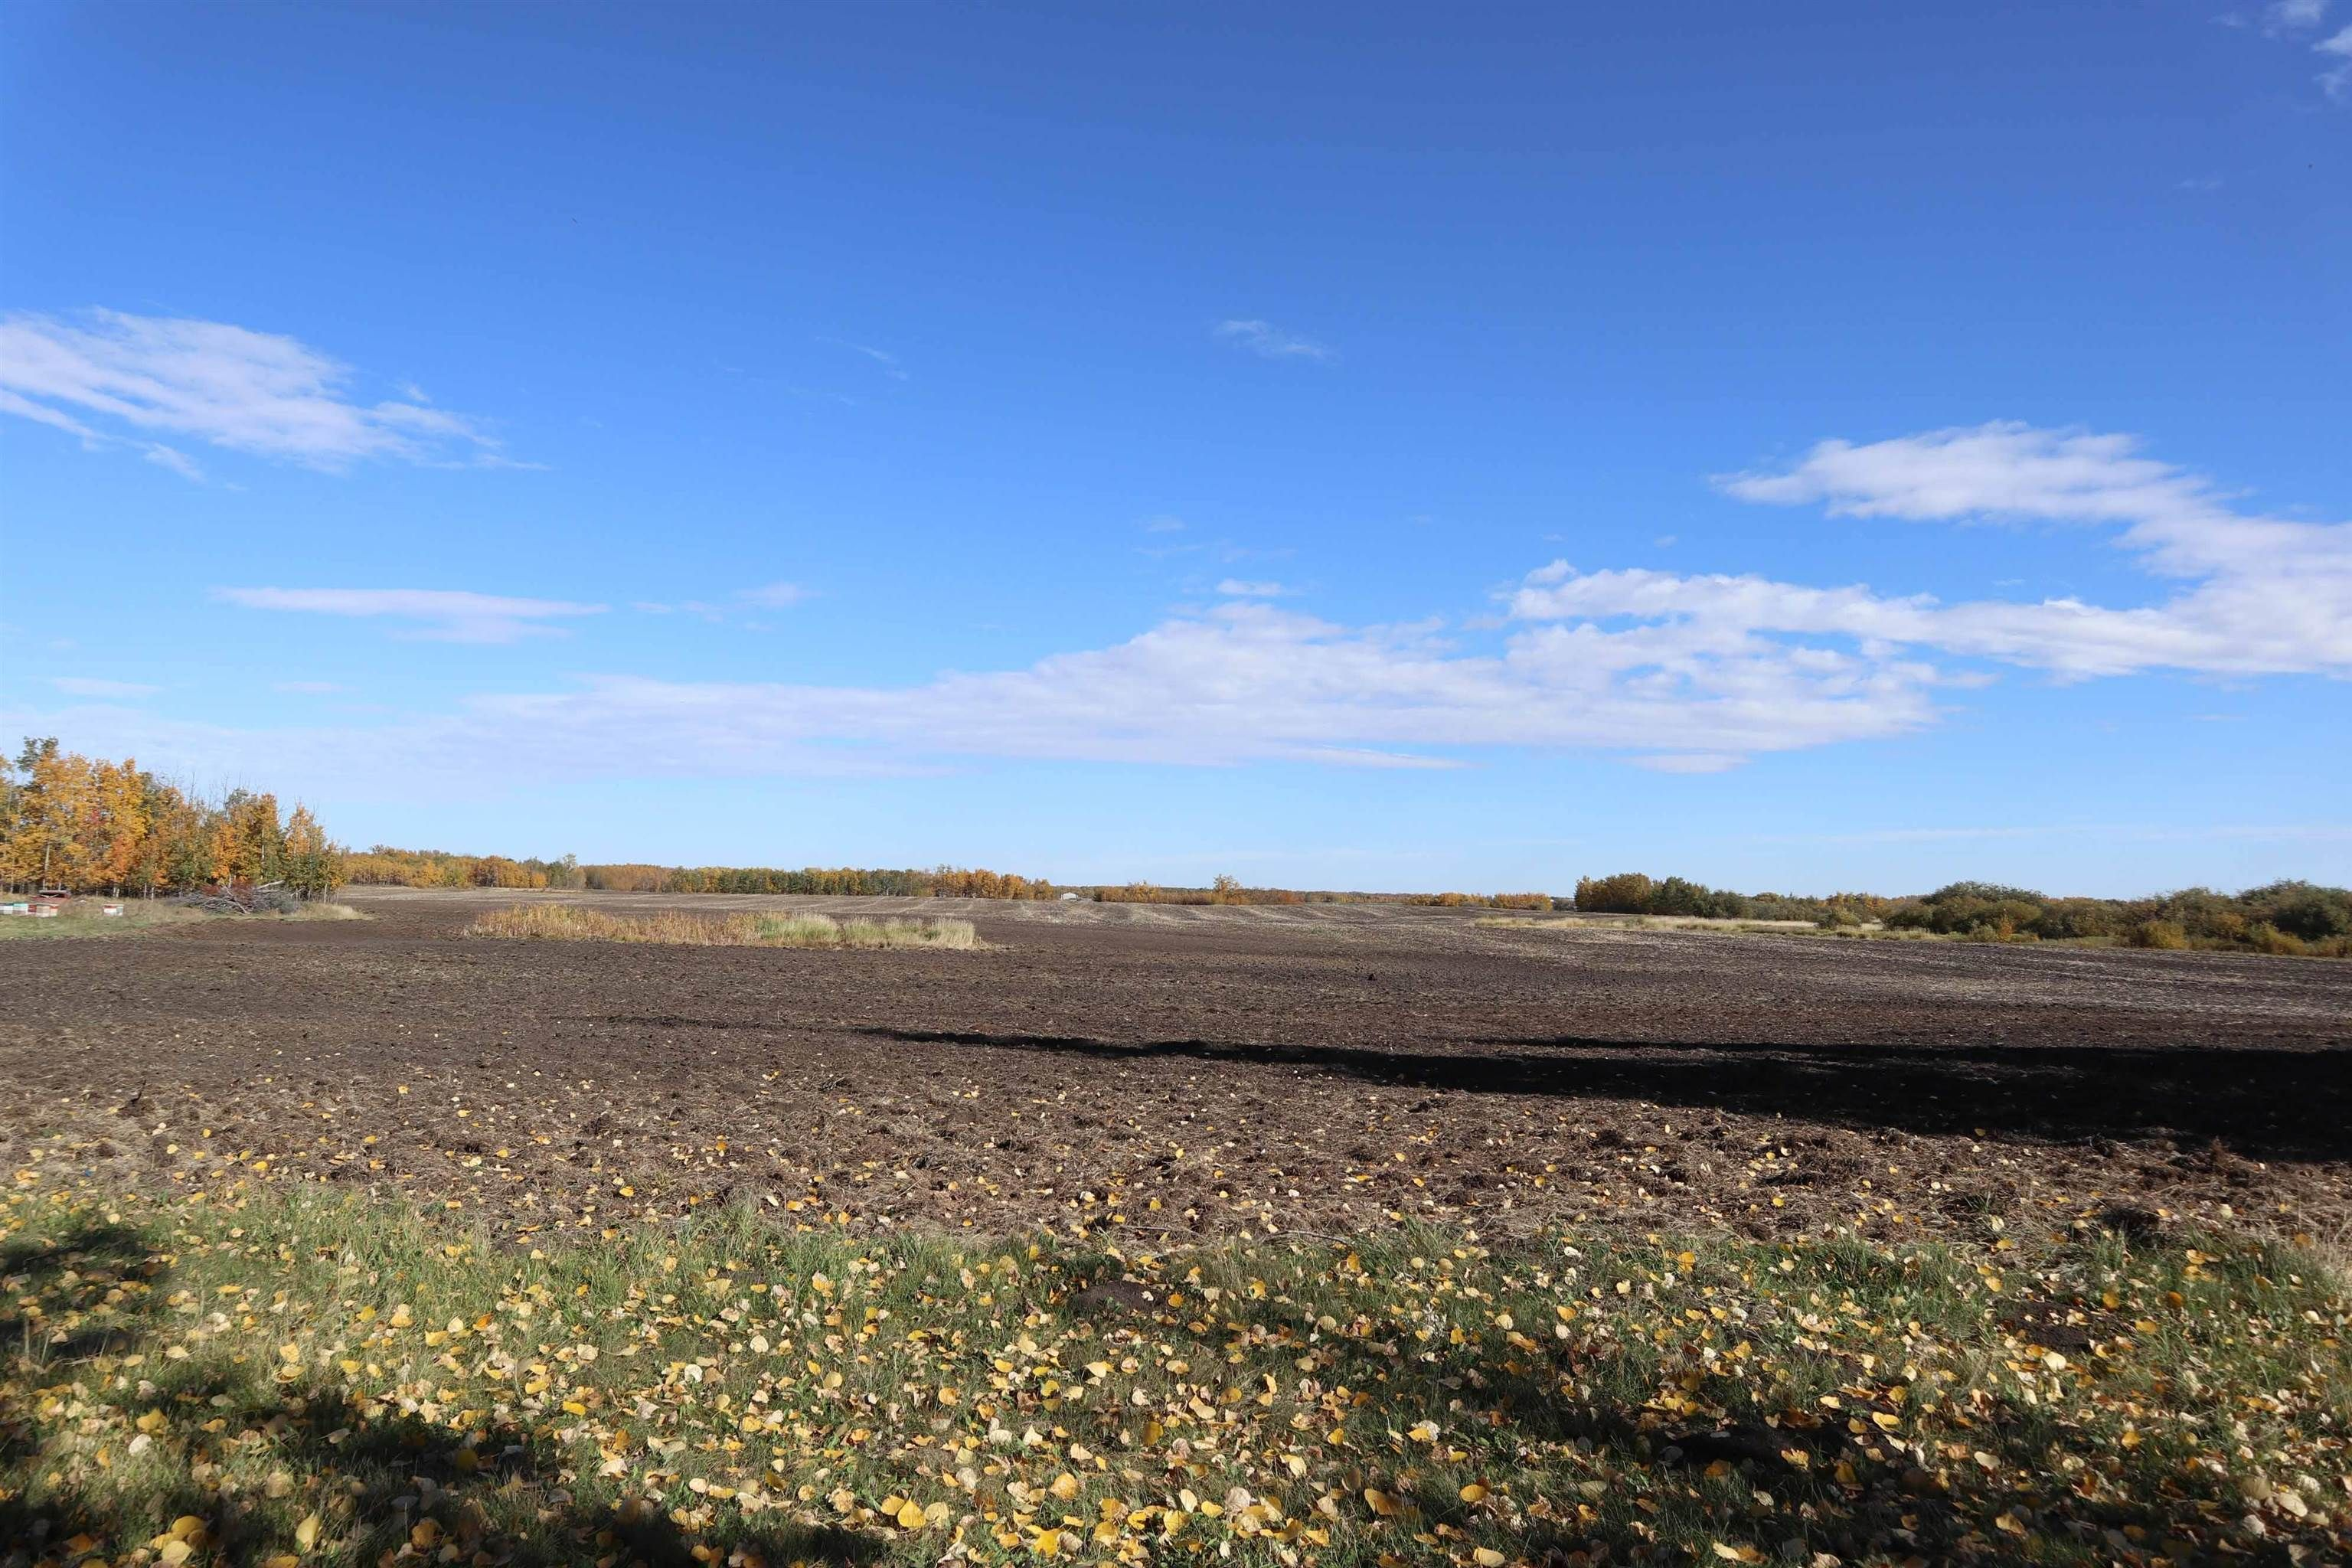 Main Photo: TWP 491 RR 273: Rural Leduc County Rural Land/Vacant Lot for sale : MLS®# E4264523